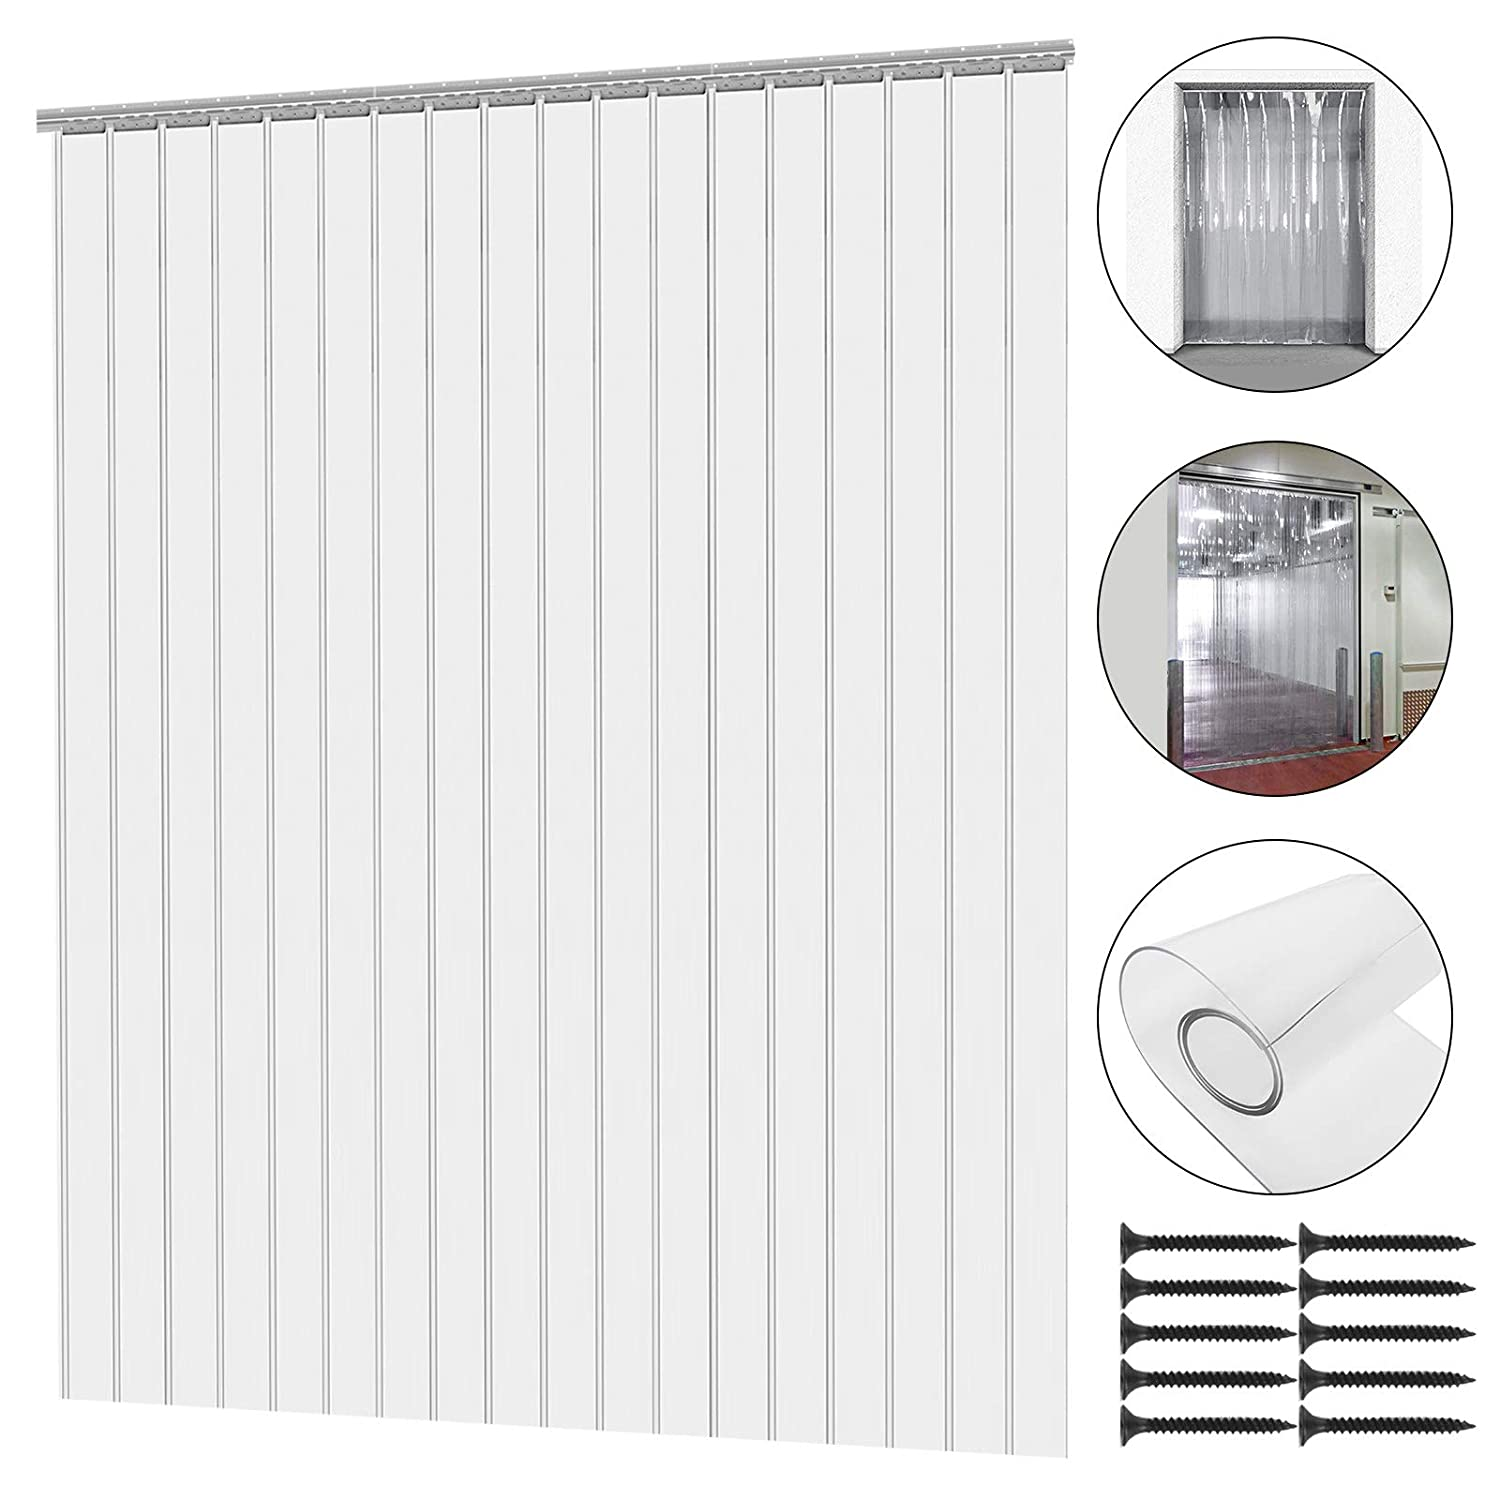 Mophorn 12PCS Plastic Curtain Strips 82.6 Inch Height X 6 Inch Width Strip Door Curtain 0.078 Inch Thickness Clear Curtain Strip 50% Overlap for 4' X 7' Doors